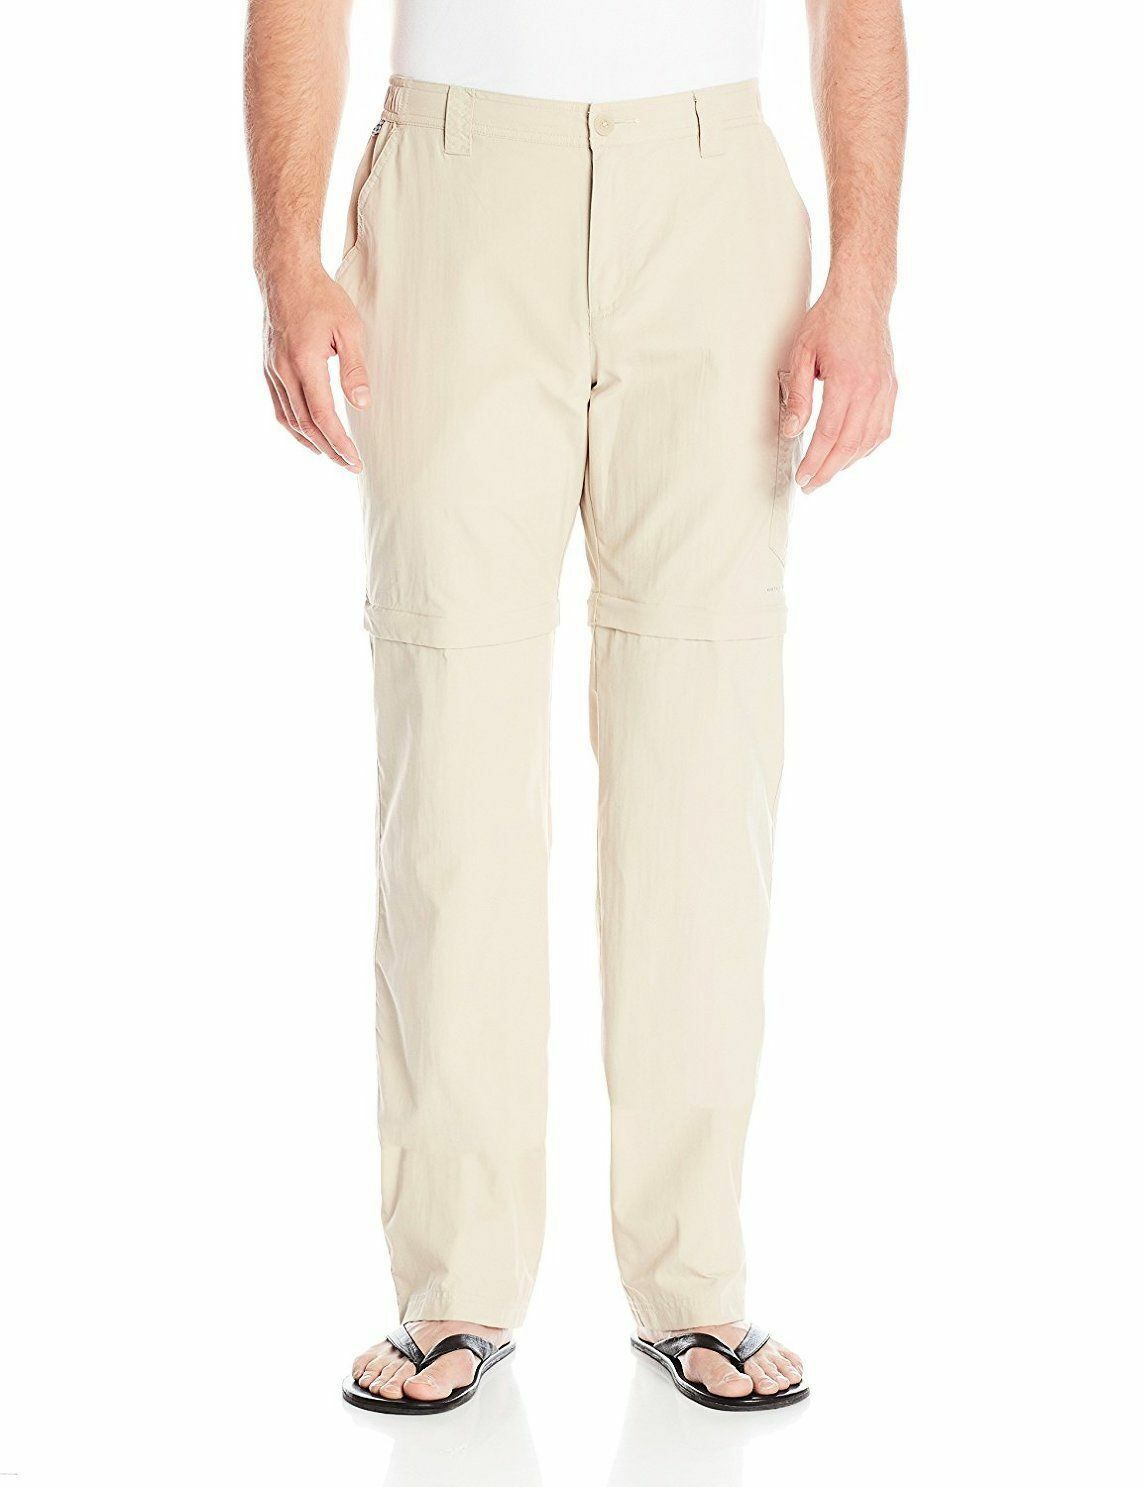 NEW Columbia men's Blood and Guts III Congreenible pants FOSSIL, Inseam 32